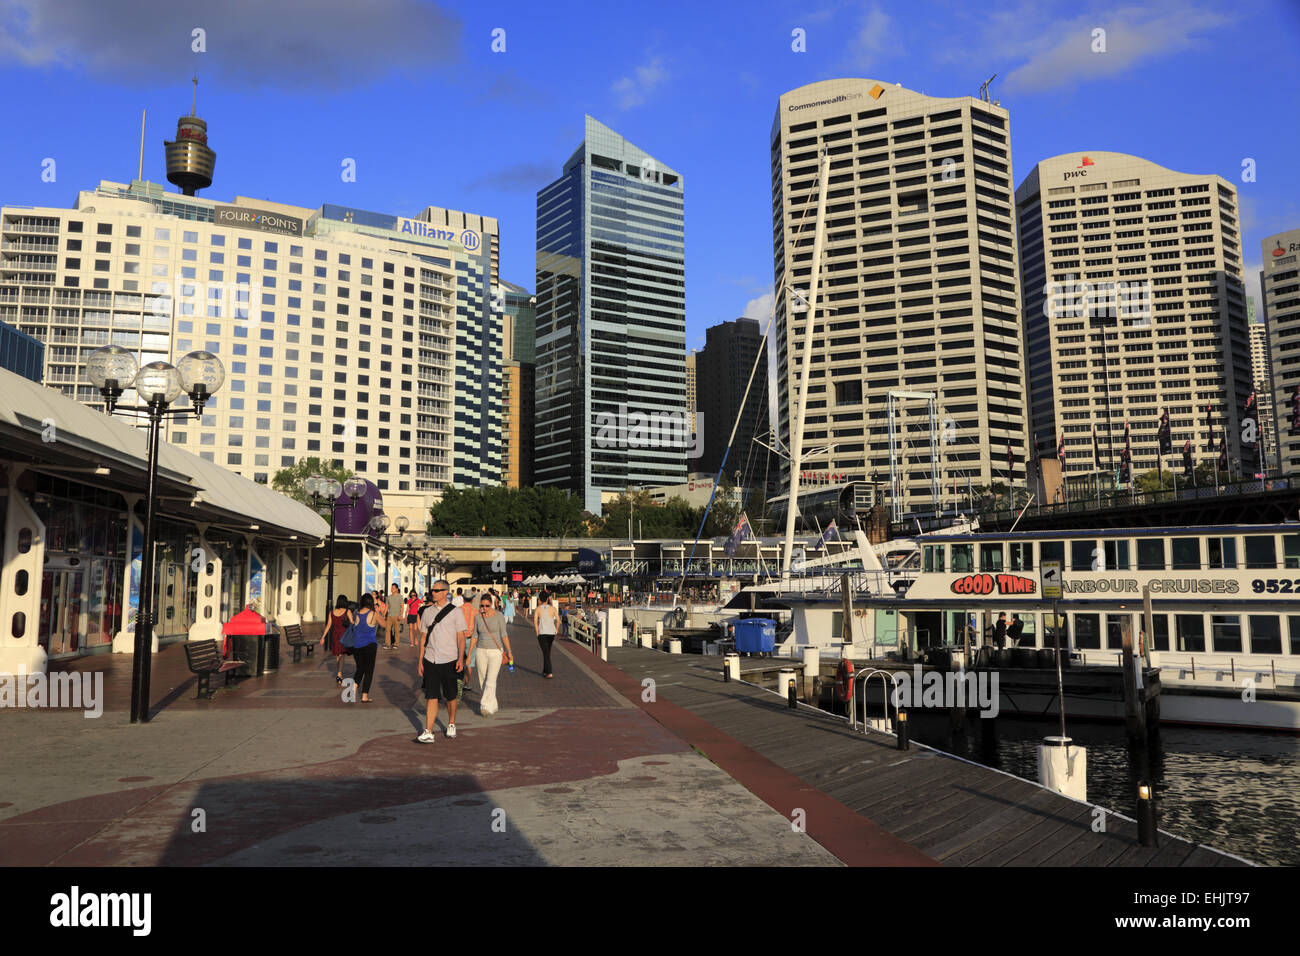 The view of Sydney Central Business District downtown from Darling Harbour, Australia - Stock Image